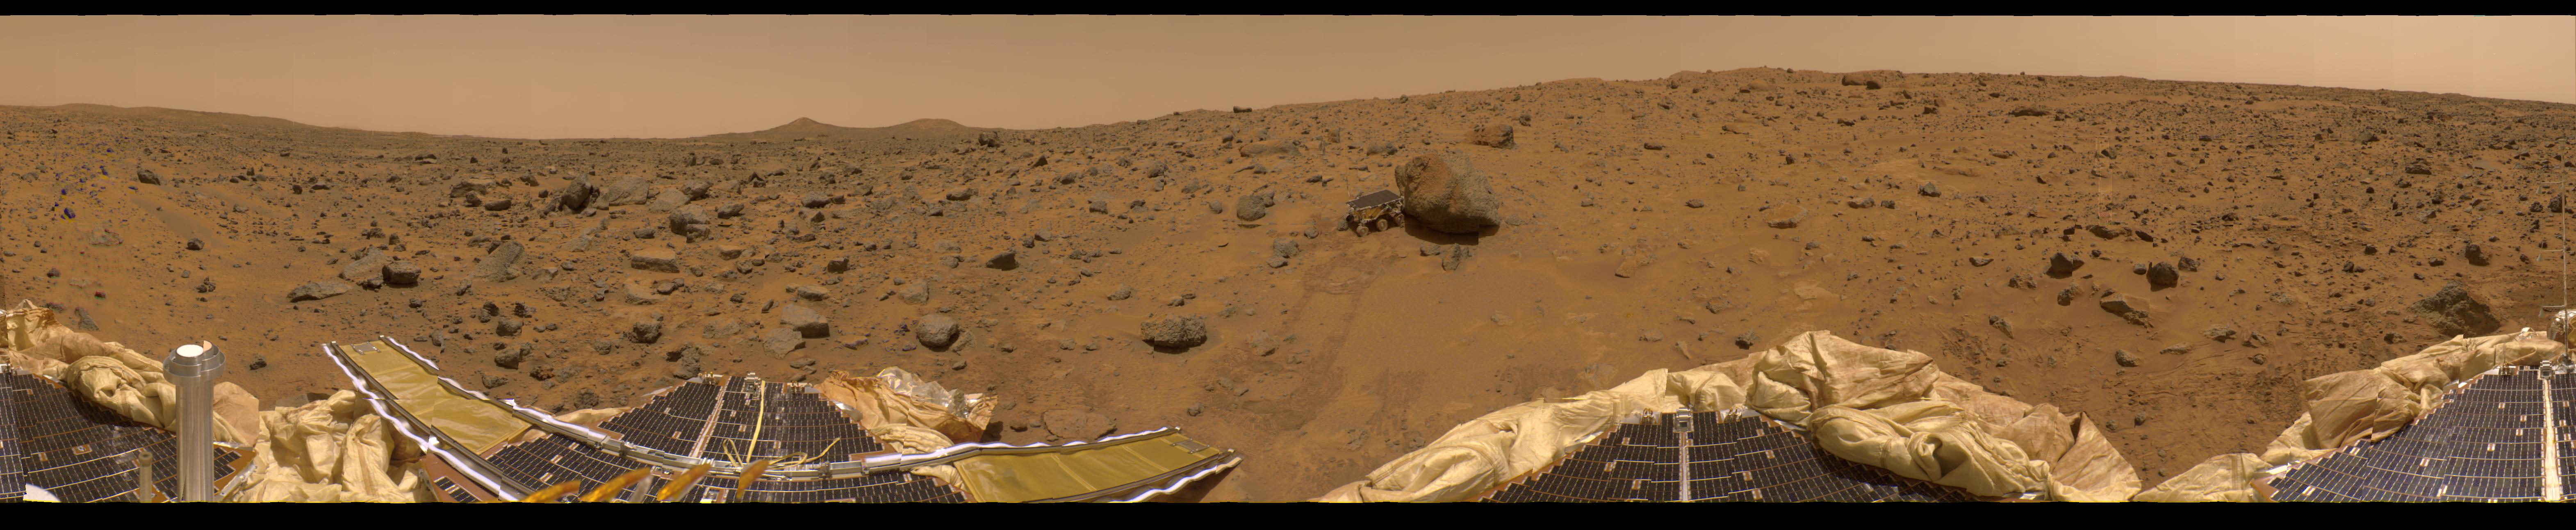 APOD: July 22, 1997 - A Presidential Panorama of Mars